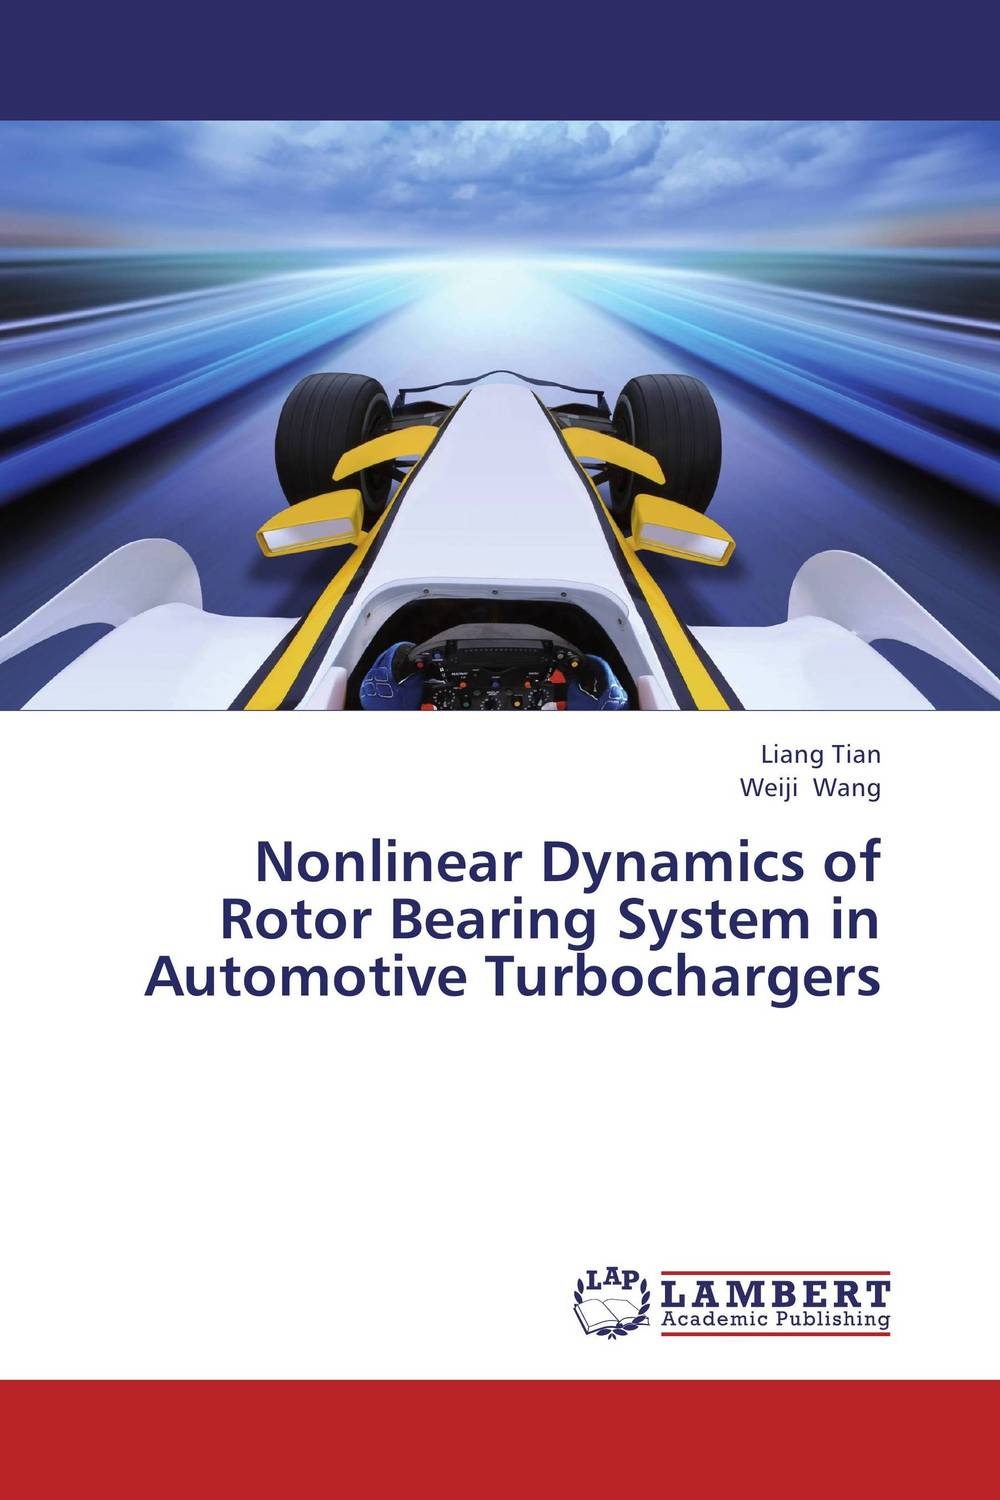 Nonlinear Dynamics of Rotor Bearing System in Automotive Turbochargers